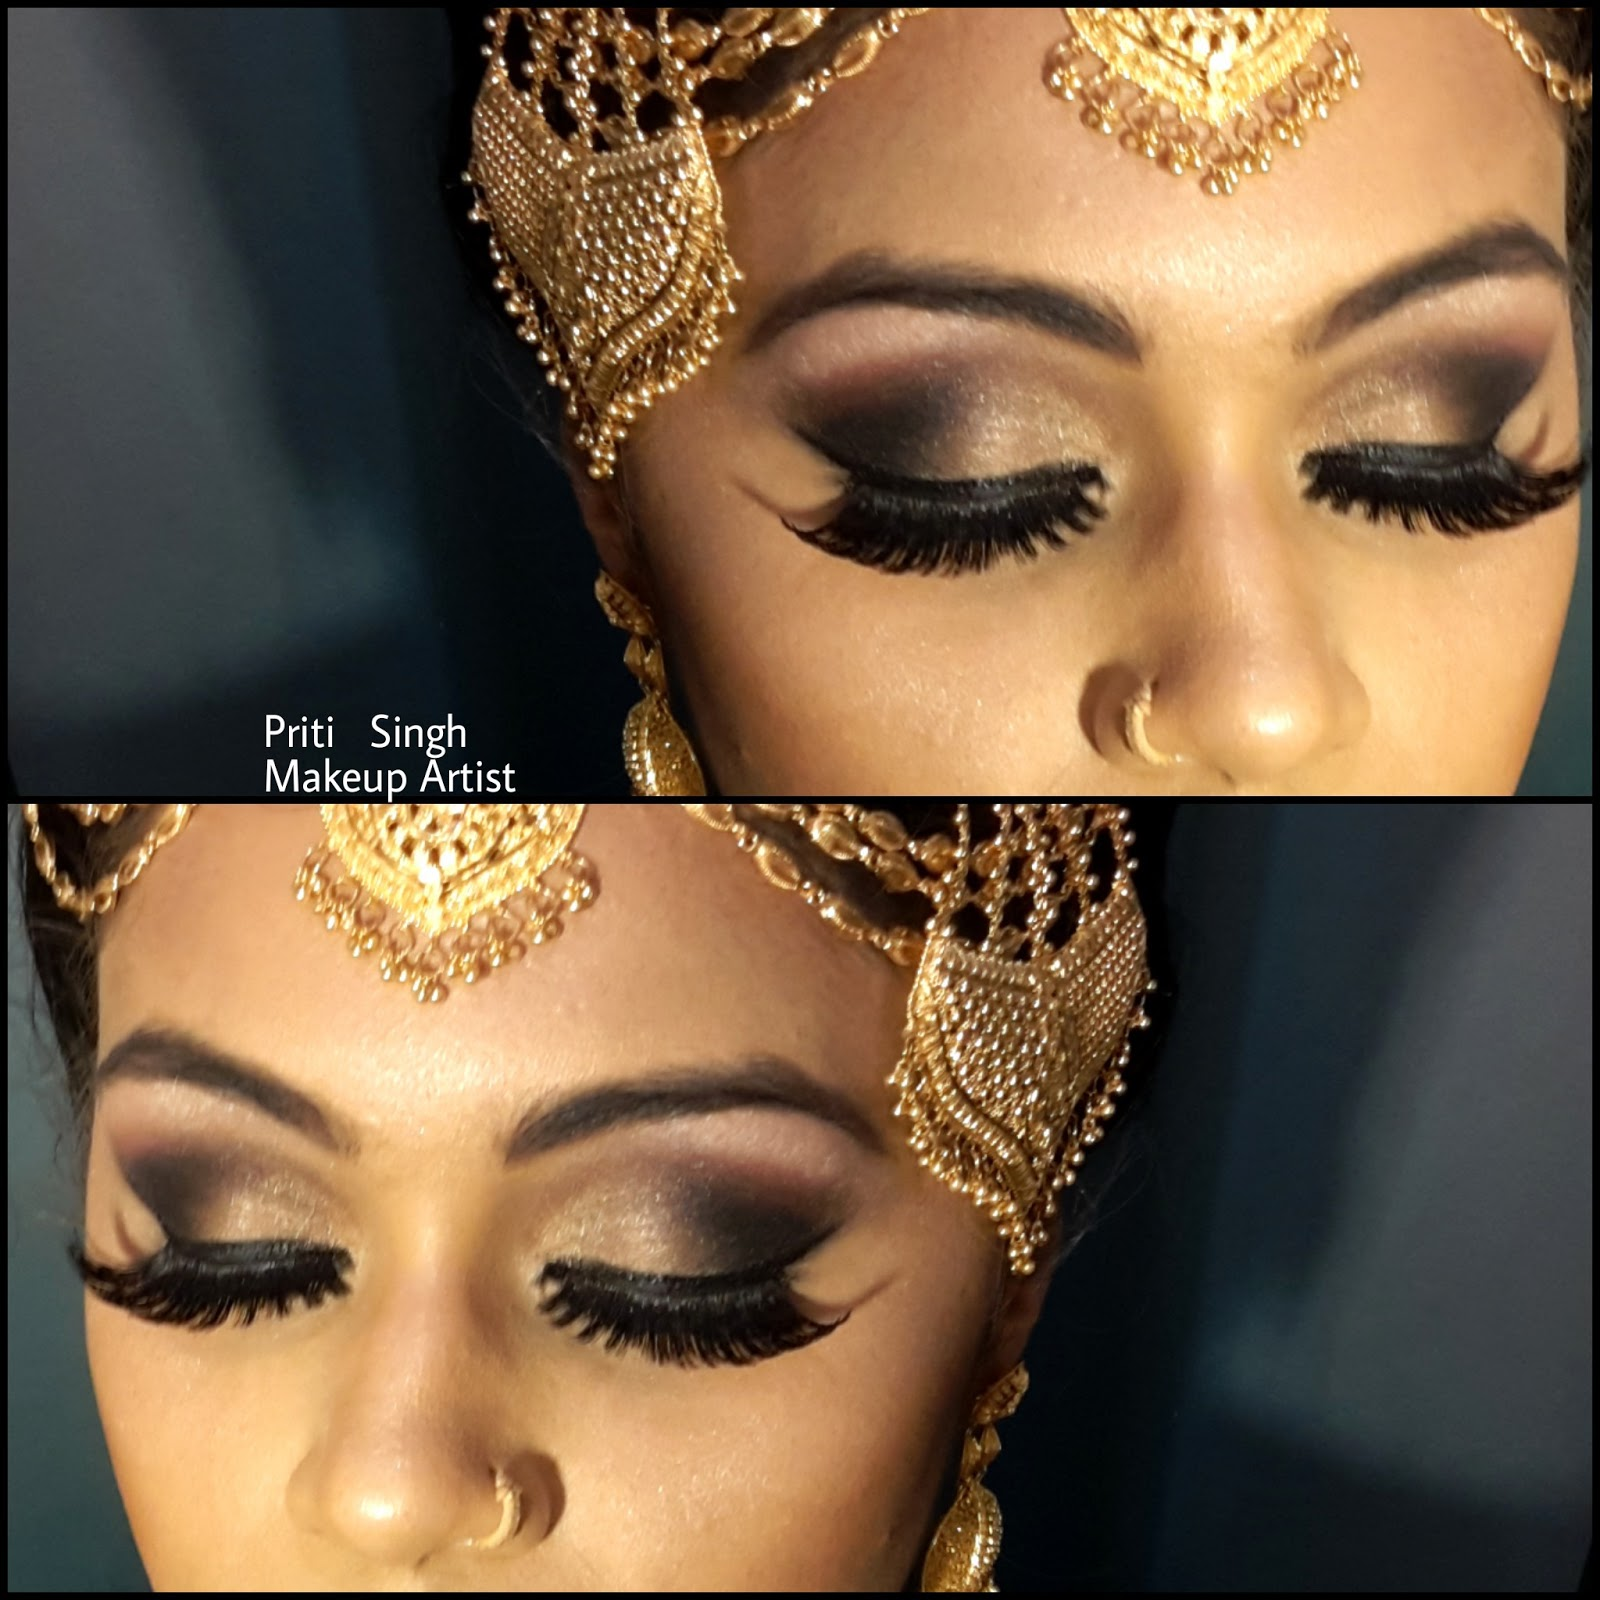 Makeup artist in chandigarh Call 9988850171 for bookings